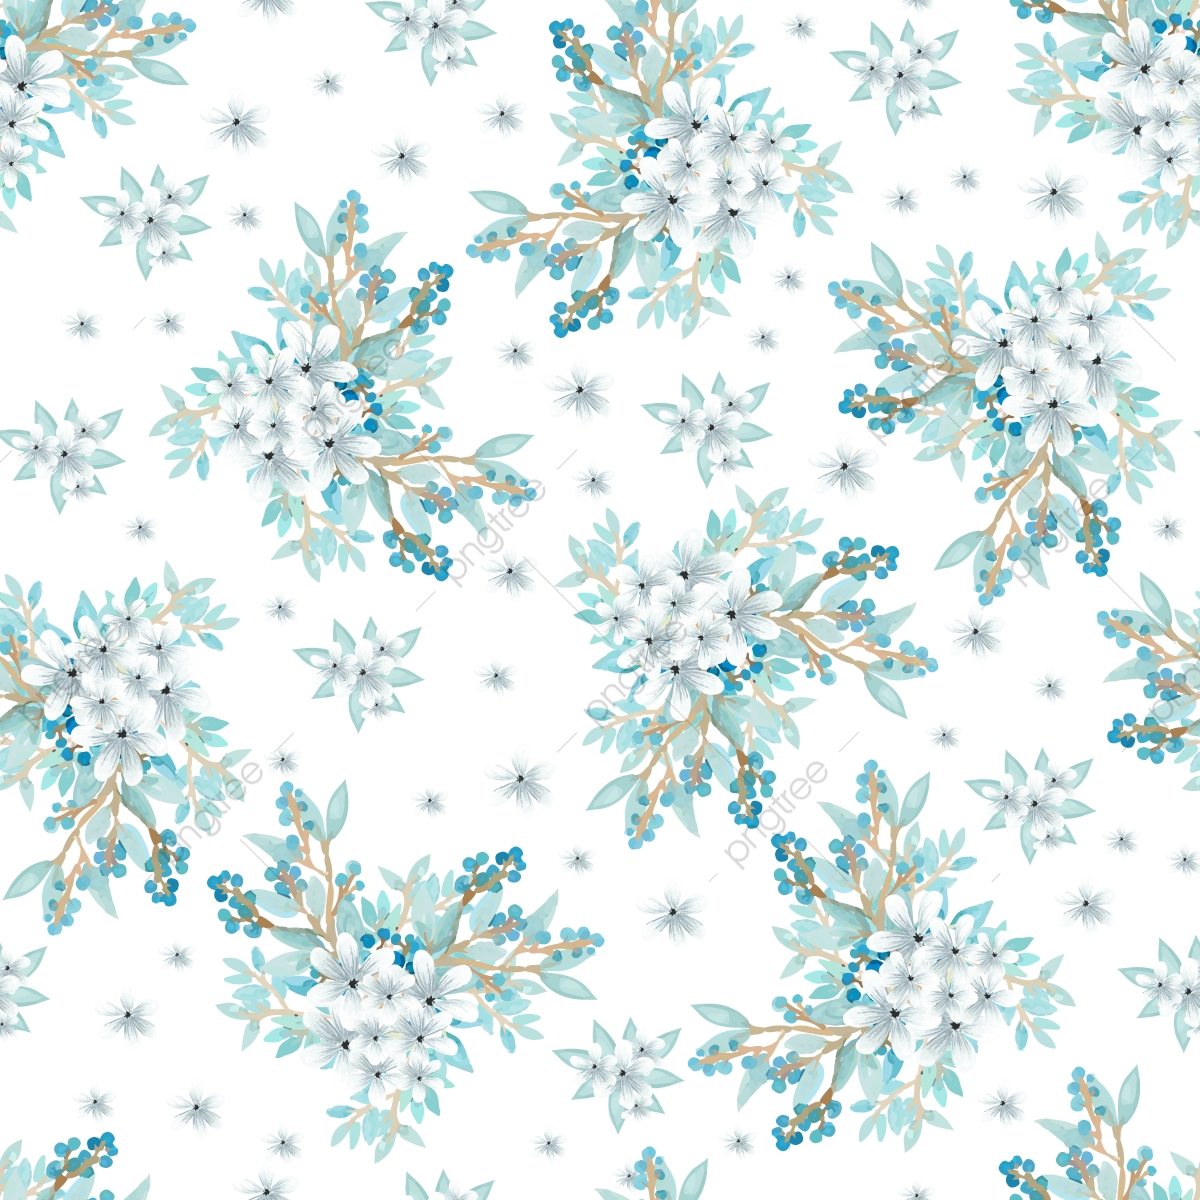 White Wedding Espa L: Watercolor Floral Seamless Pattern With Beautiful Blue